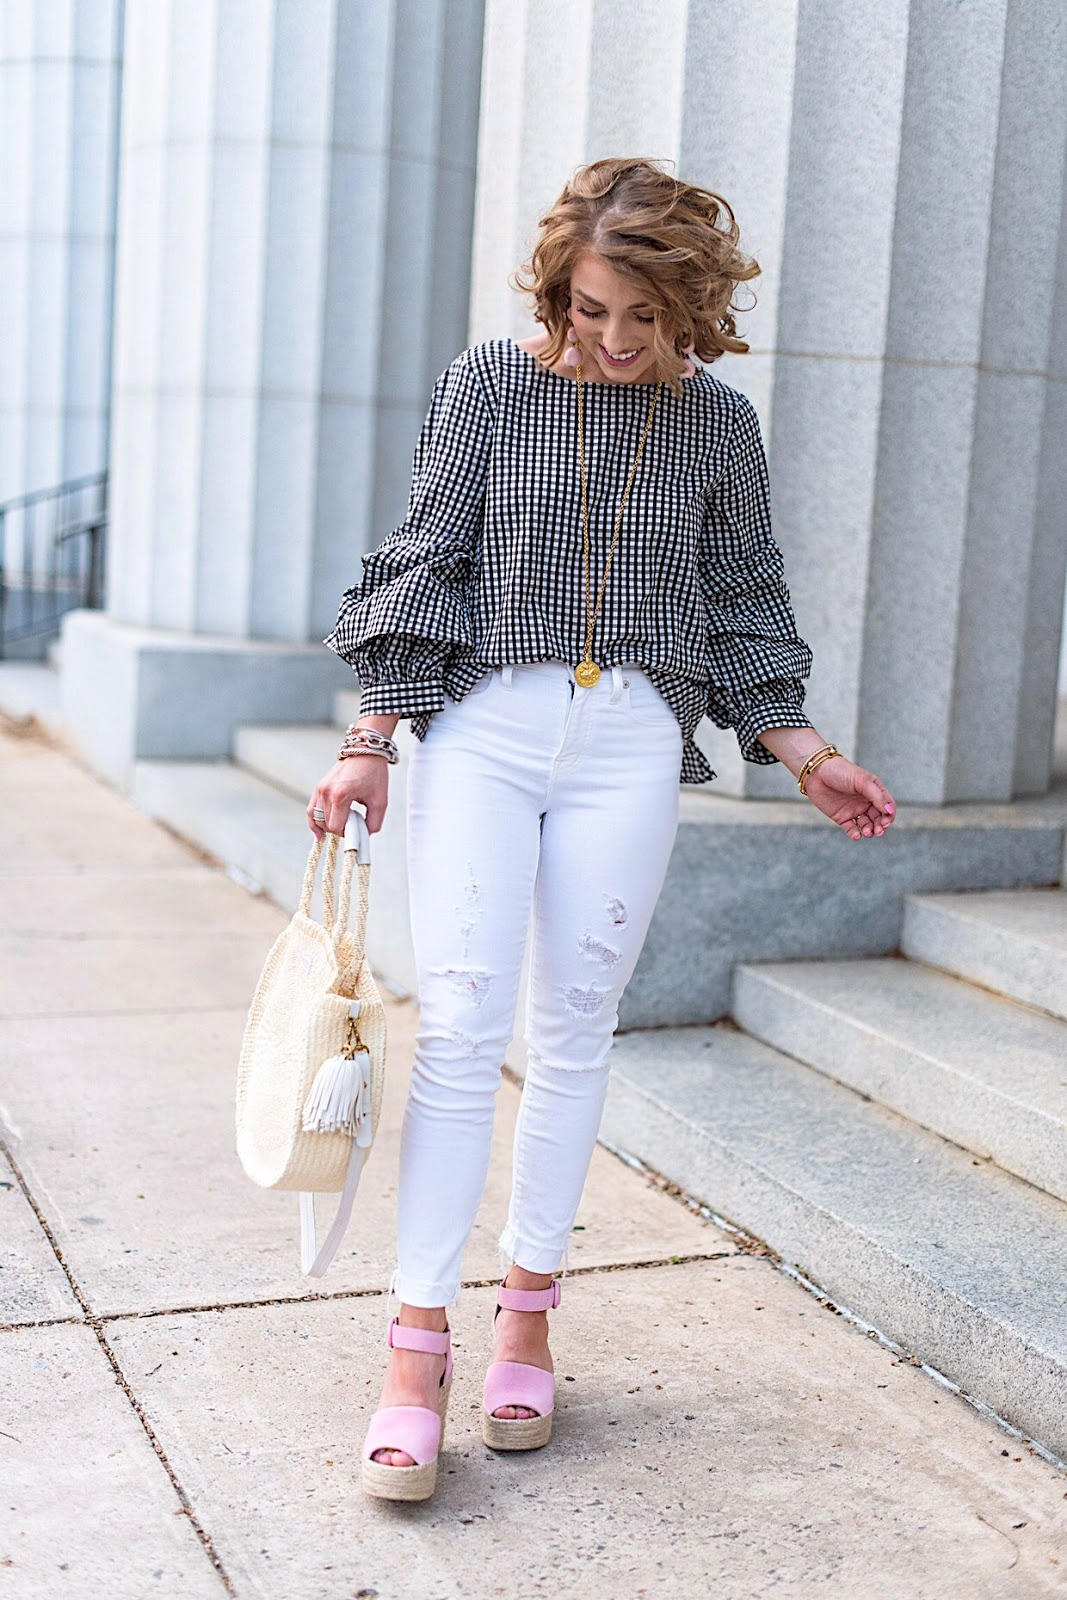 Spring Style - Click through to see the full post on Something Delightful Blog